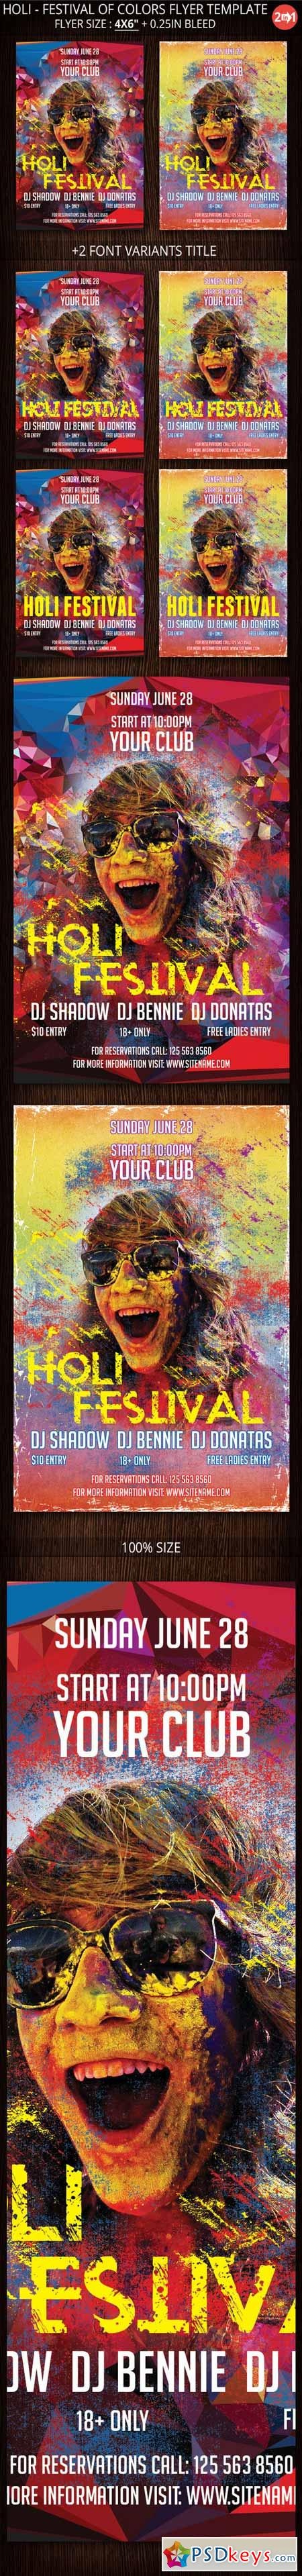 Holi - Festival Of Colors Flyer 388746